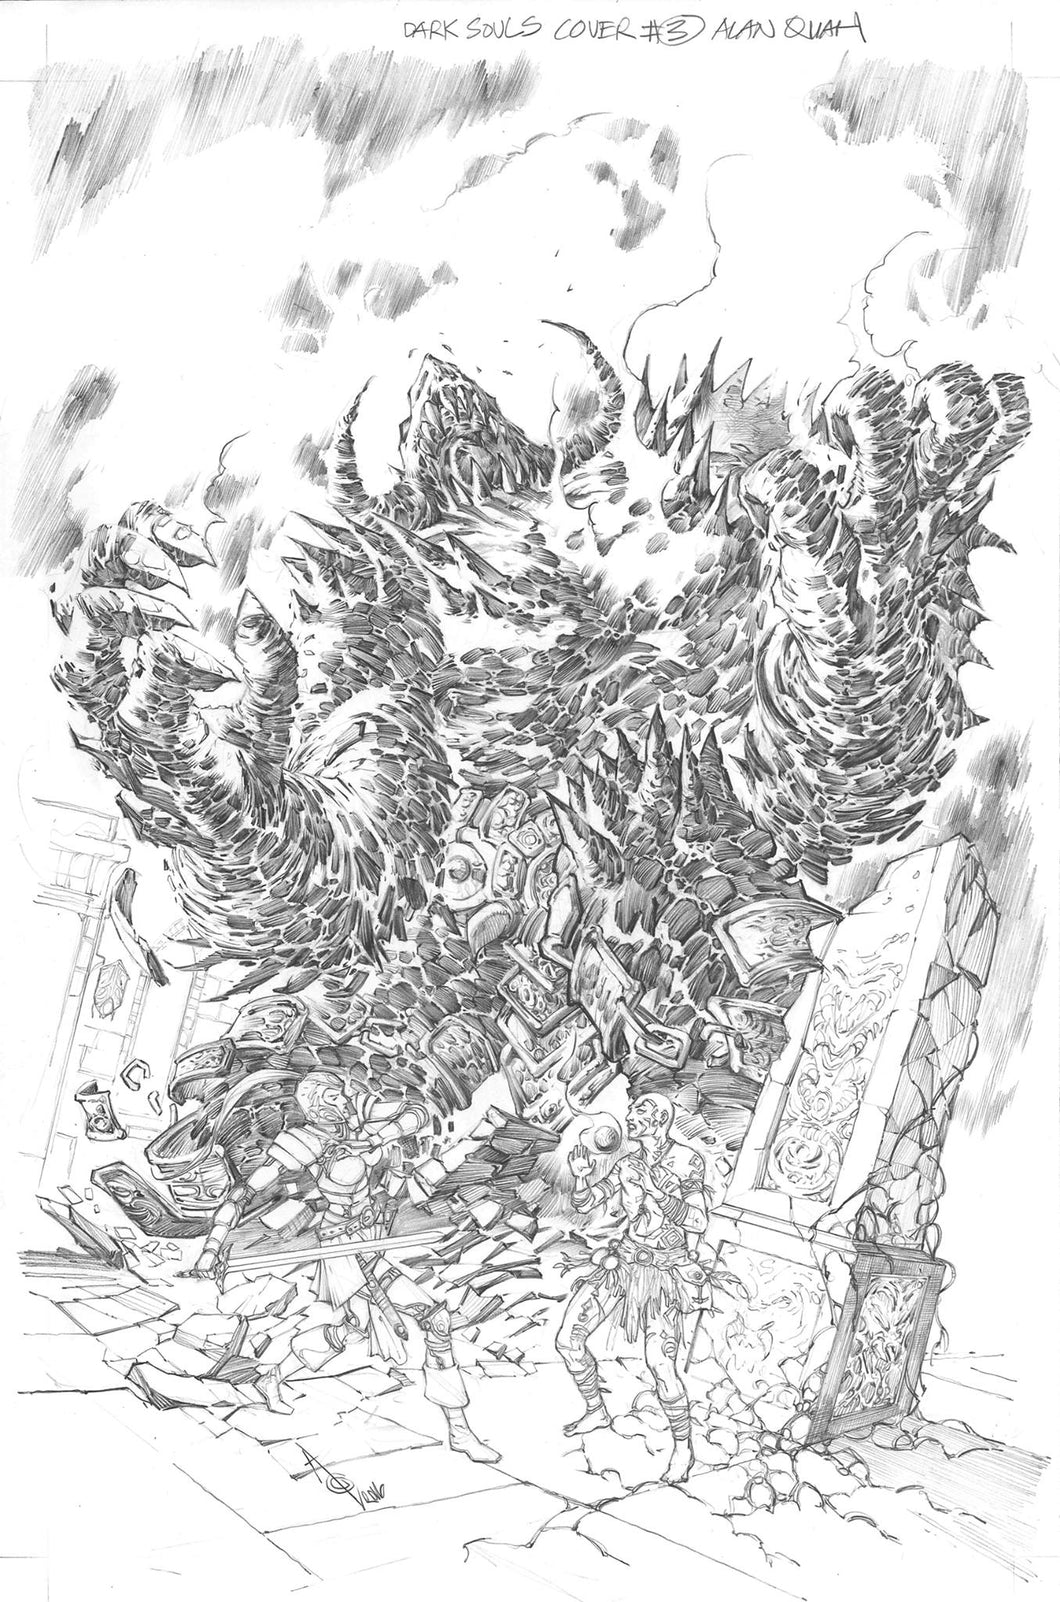 Alan Quah Original Art Dark Souls Breath of Andolus #4 Cover